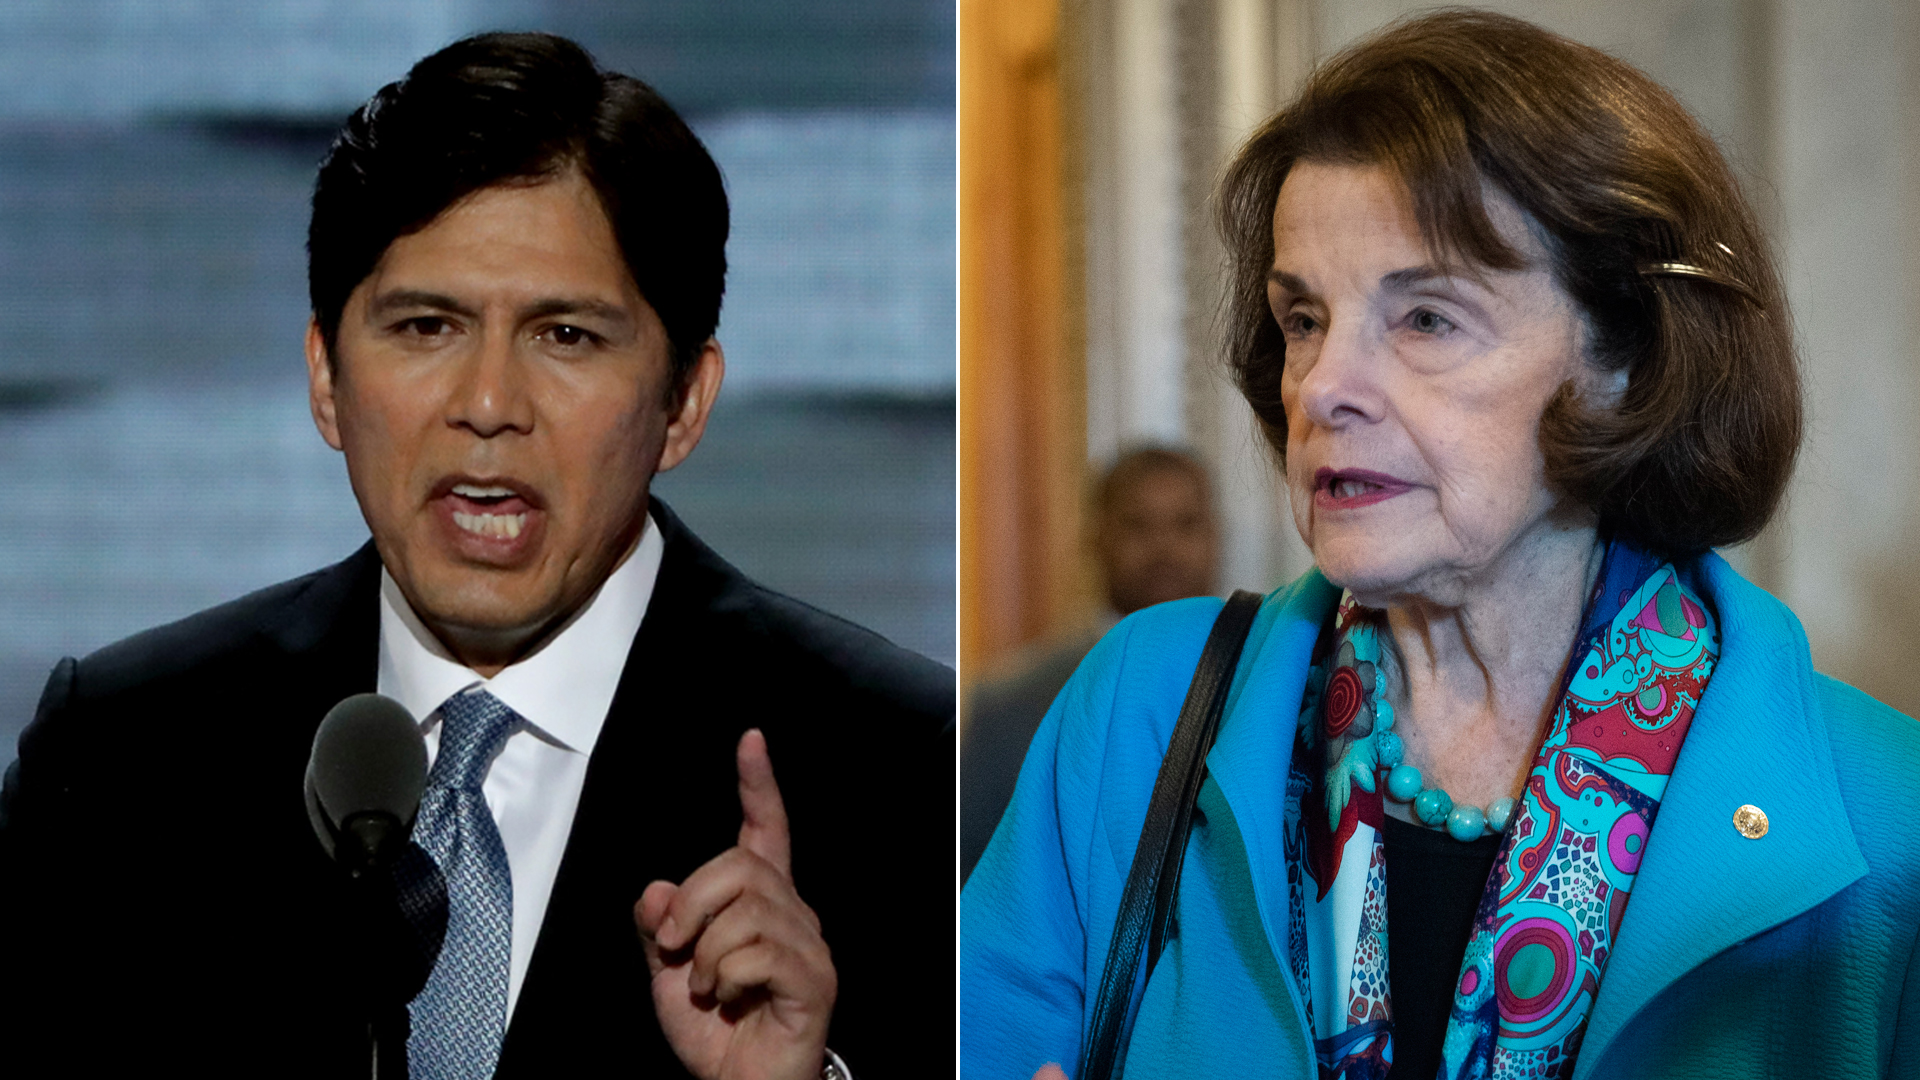 At left, State Sen. Kevin de León delivers a speech at the Democratic National Convention in Philadelphia on July 25, 2016; at right, Sen. Dianne Feinstein talks to reporters as she exits the Senate floor on Oct. 6, 2018. (Credit: Alex Wong / Drew Angerer / Getty Images)